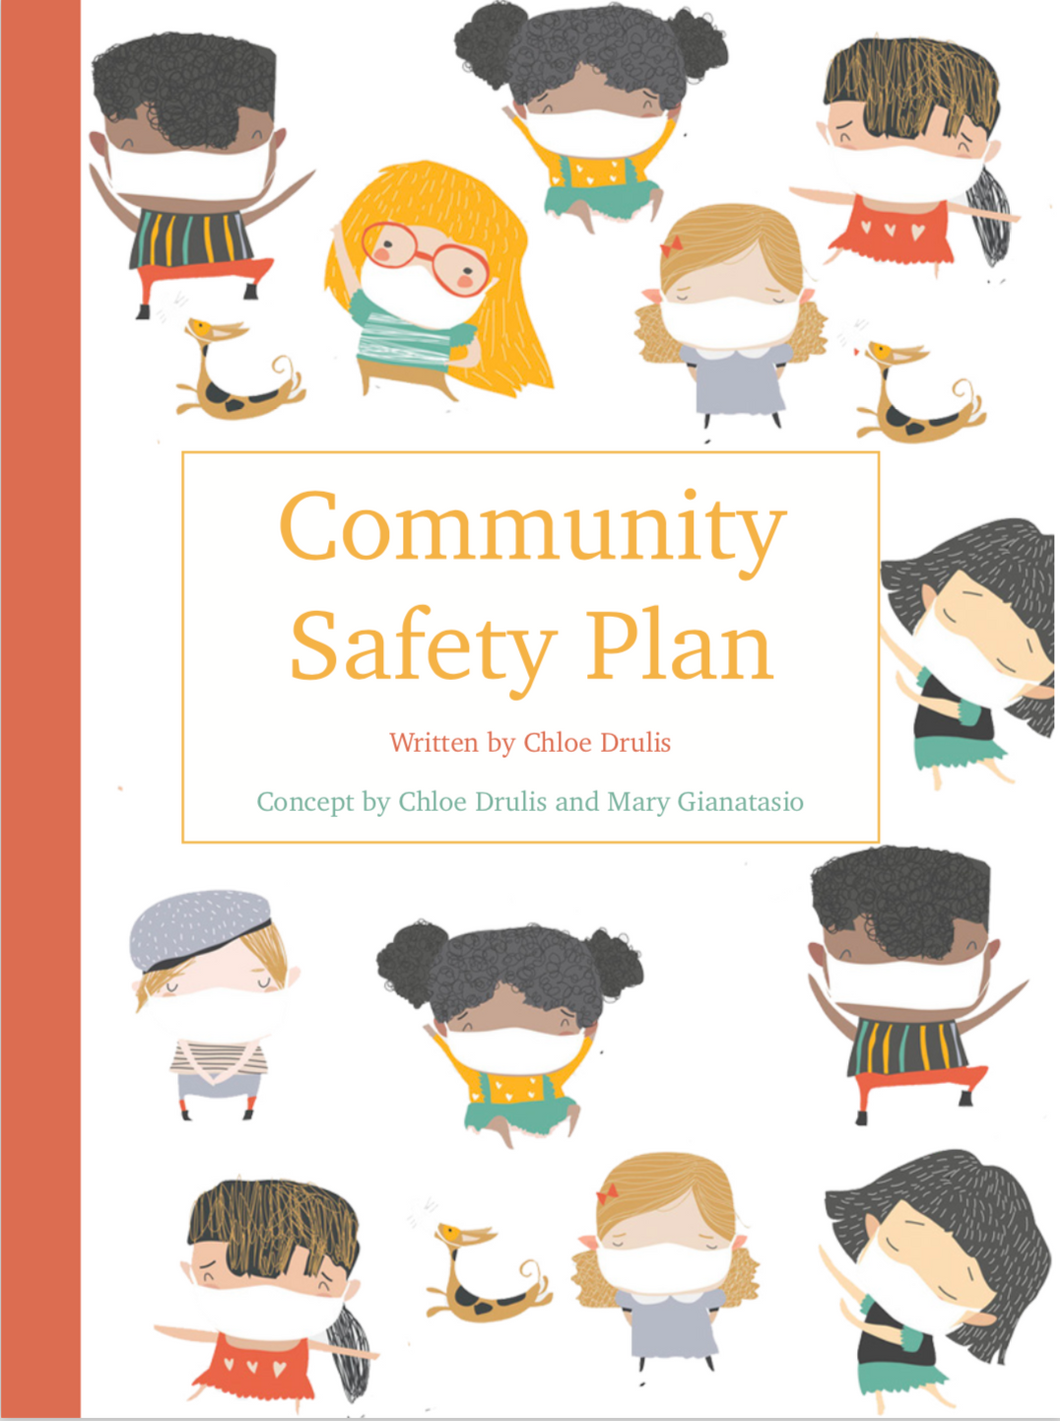 Community Safety Plan